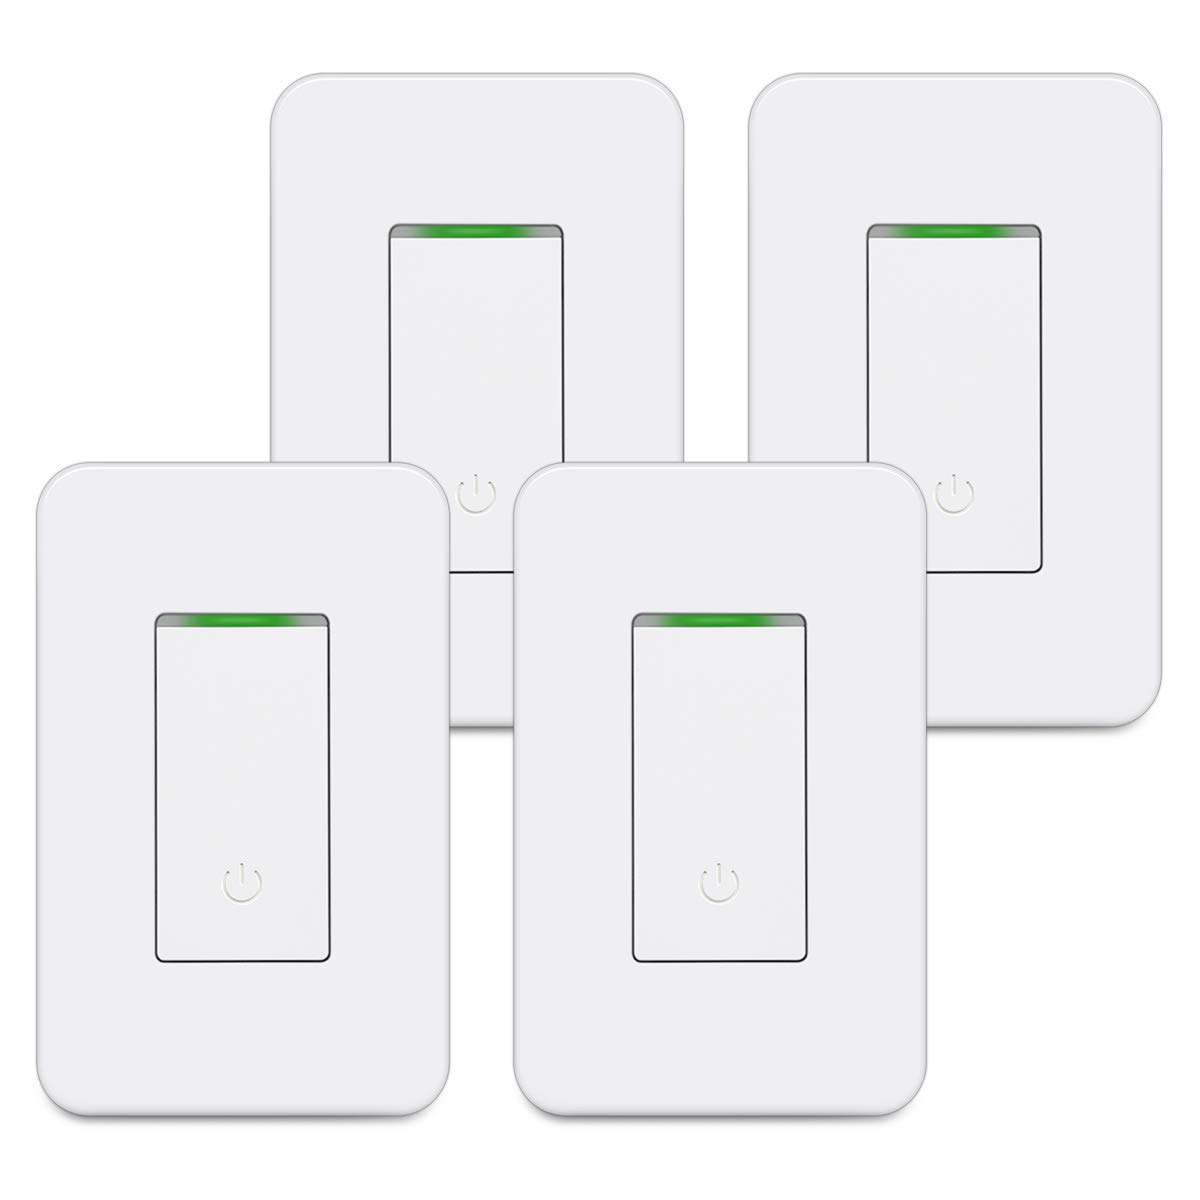 [4 Pack] BESTTEN Single Pole WiFi Light Switch, Smart Wall Switch with Remote Control and Timer Functions, Compatible with Alexa/Google Assistant/IFTTT, No Hub Required, ETL & FCC Approved